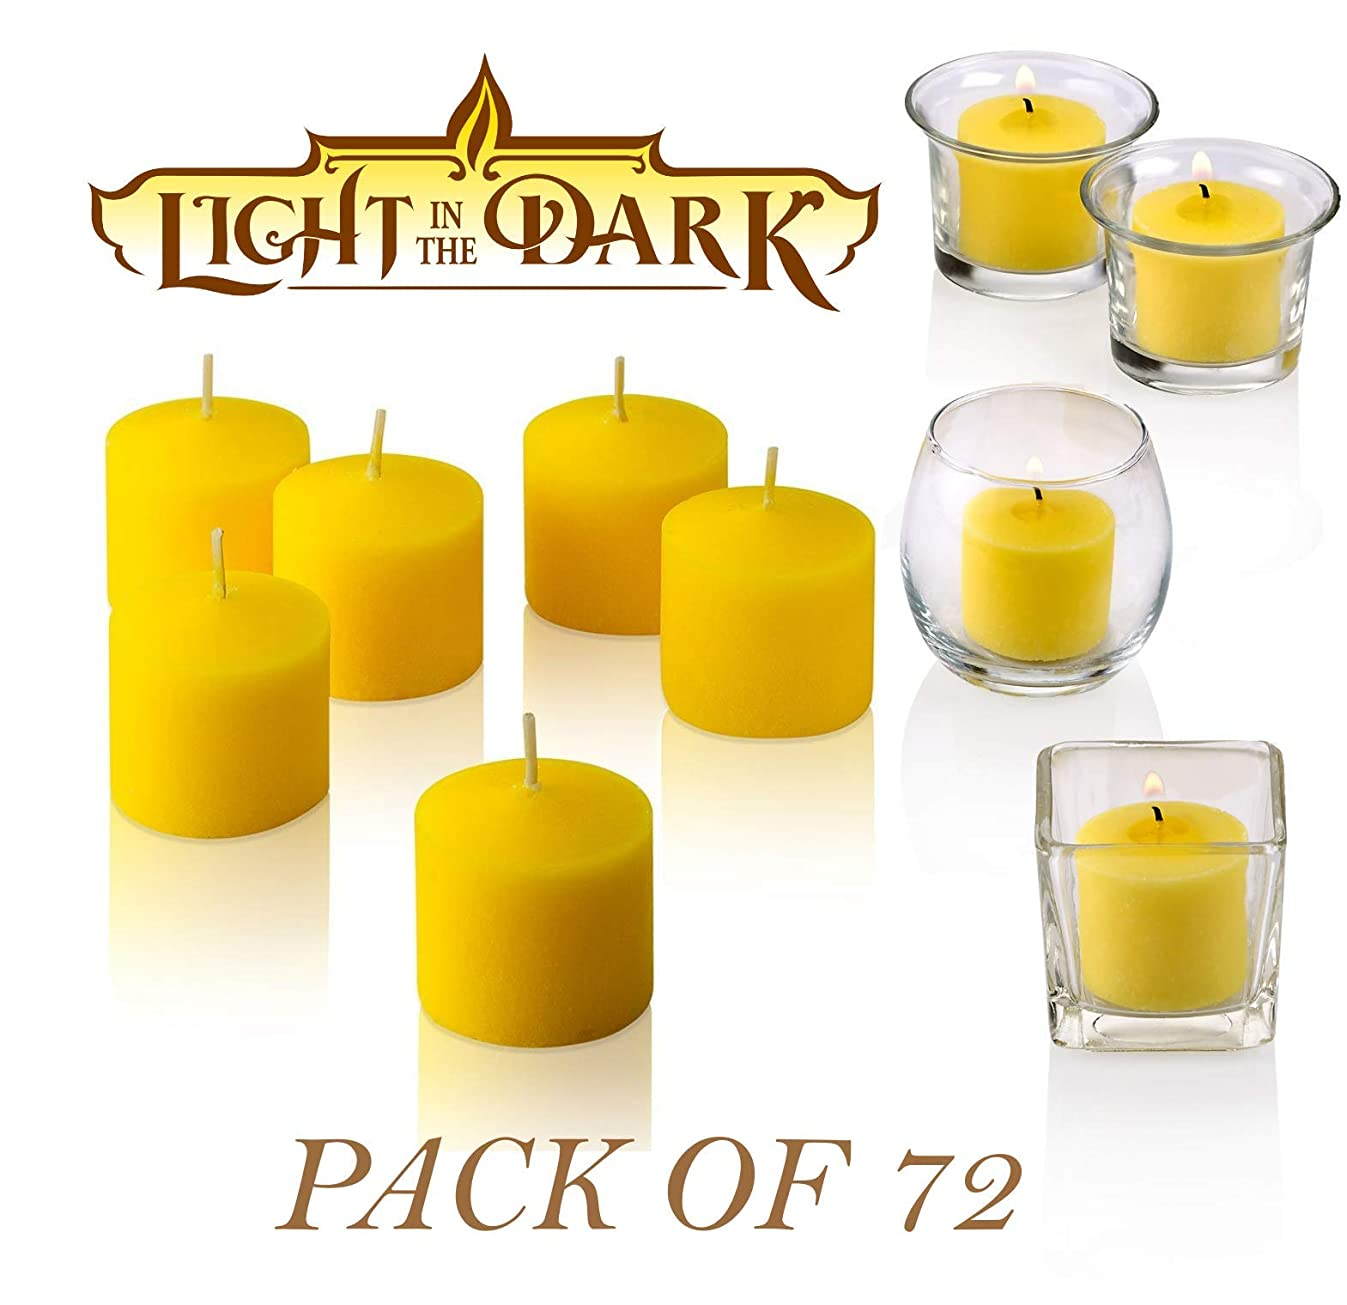 Citronella Votive Candle - Pack of 72 - Made from High Scented Citronella to Scare Away Mosquito, Bug and Flies – for Outdoor/Indoor Use - 10 Hour Burn Time - Made in USA